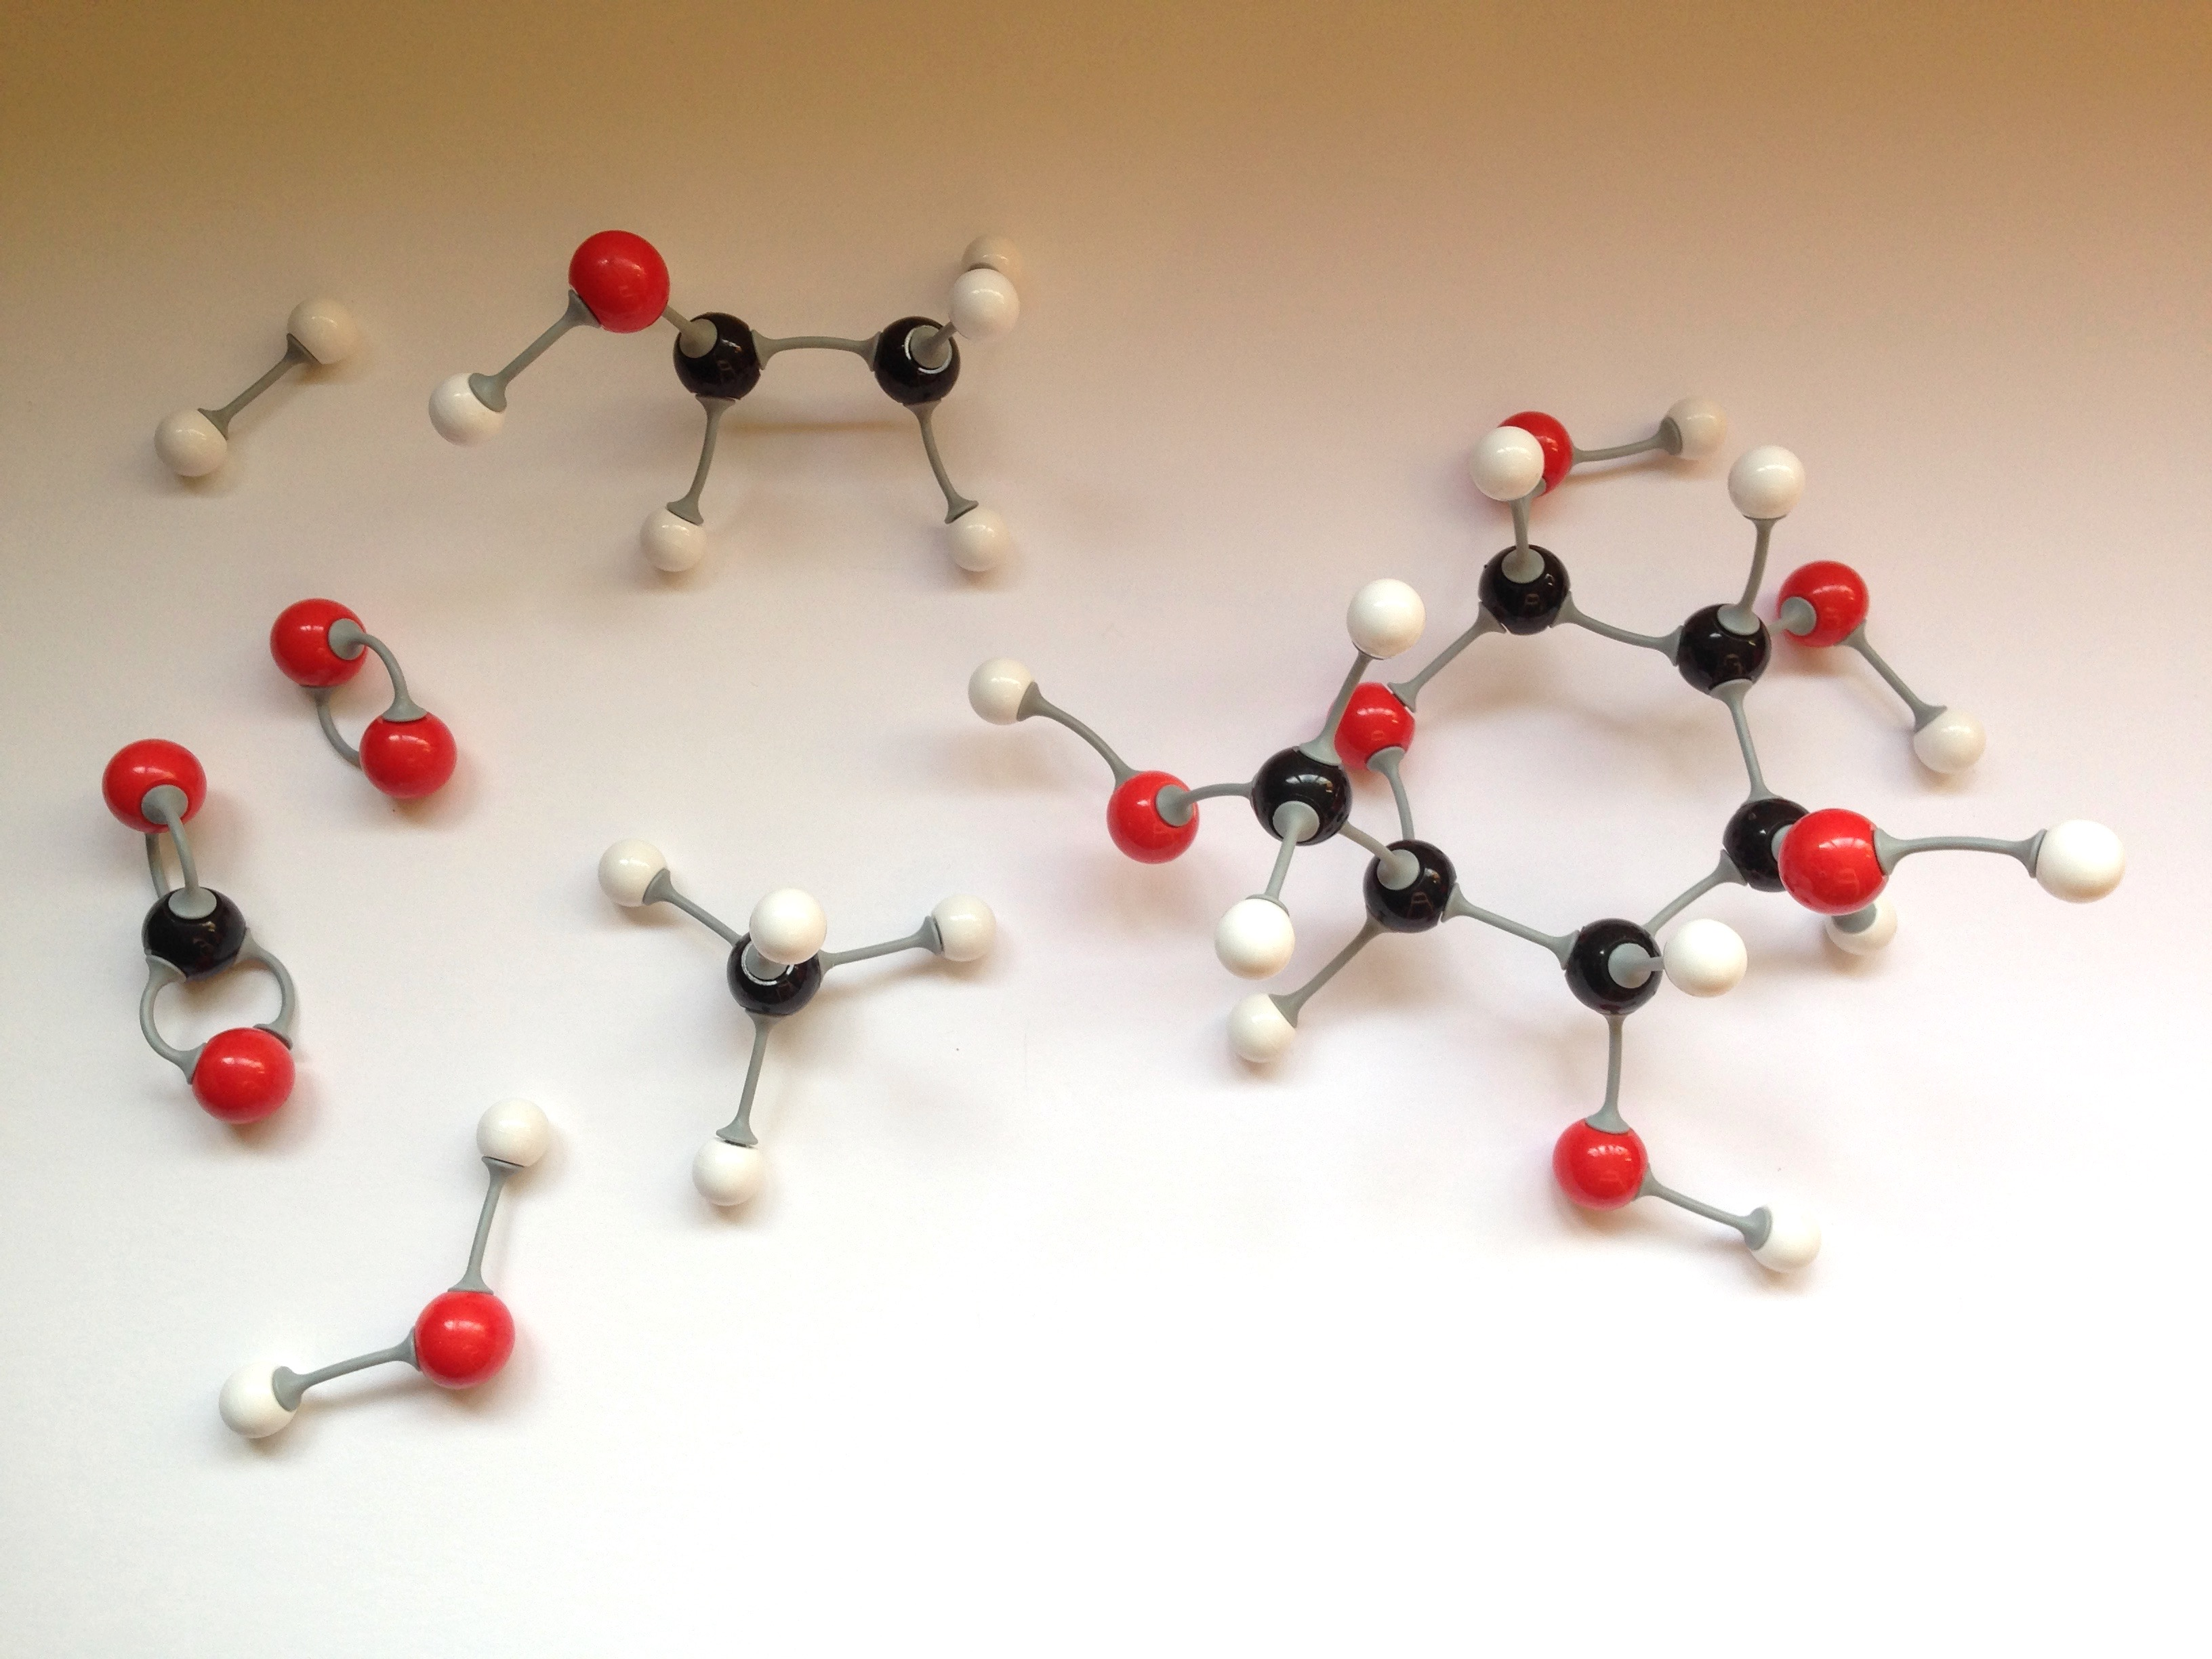 Make And Model >> Molecule modelling free play | ingridscience.ca